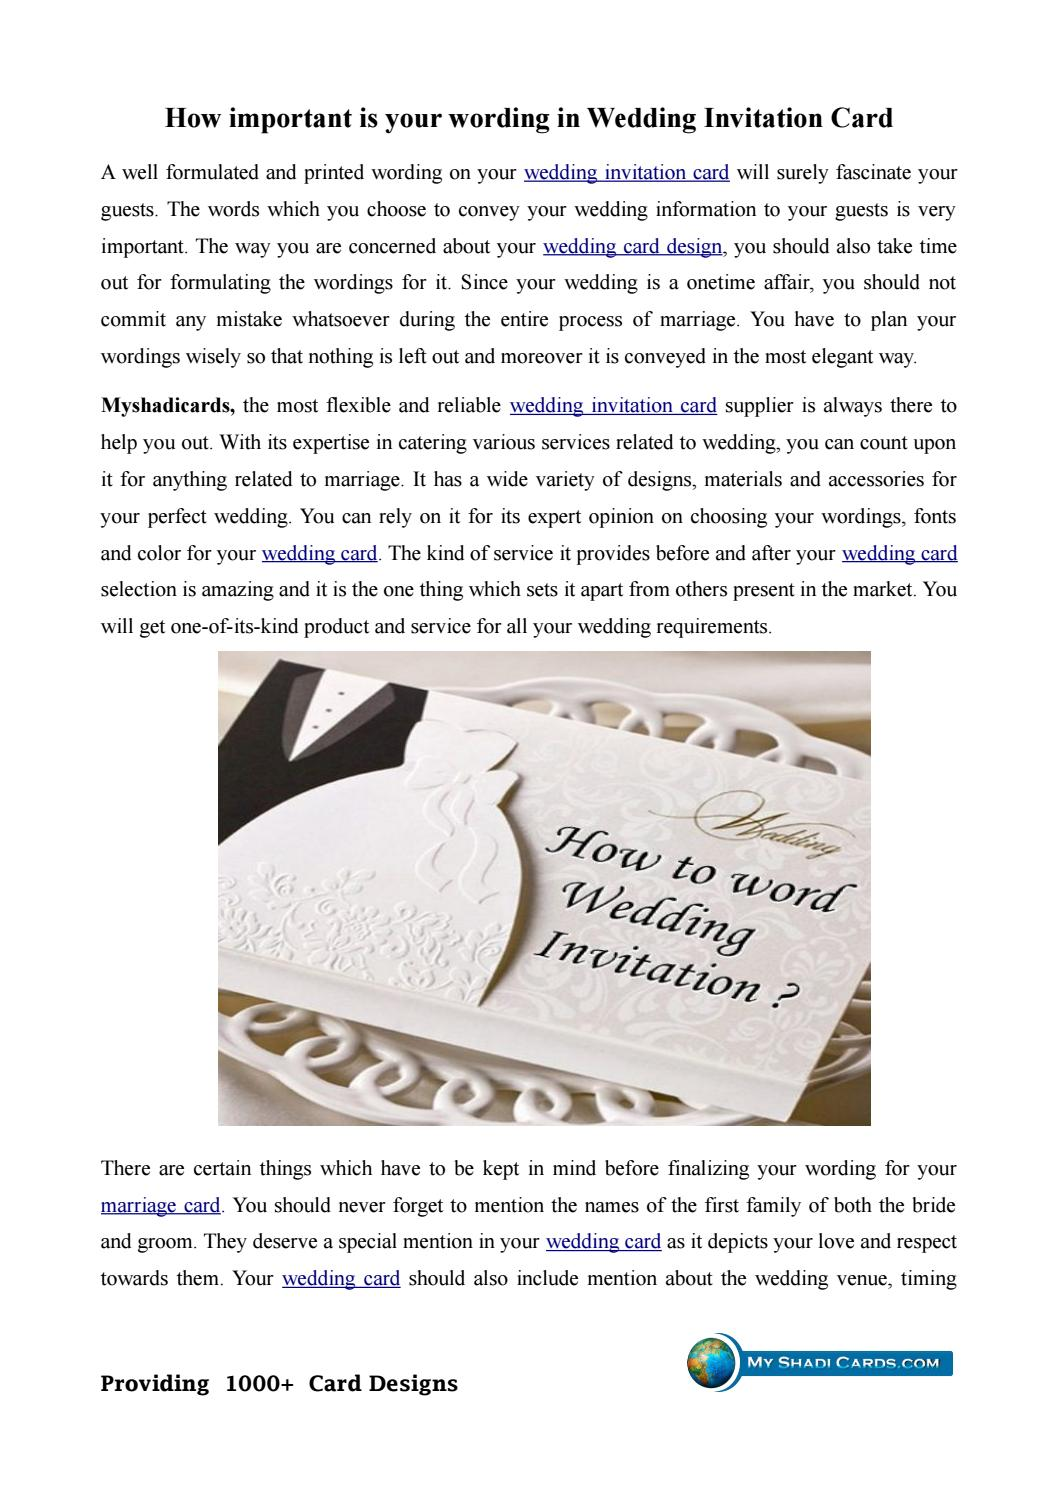 what information is a must in a wedding invitation card by